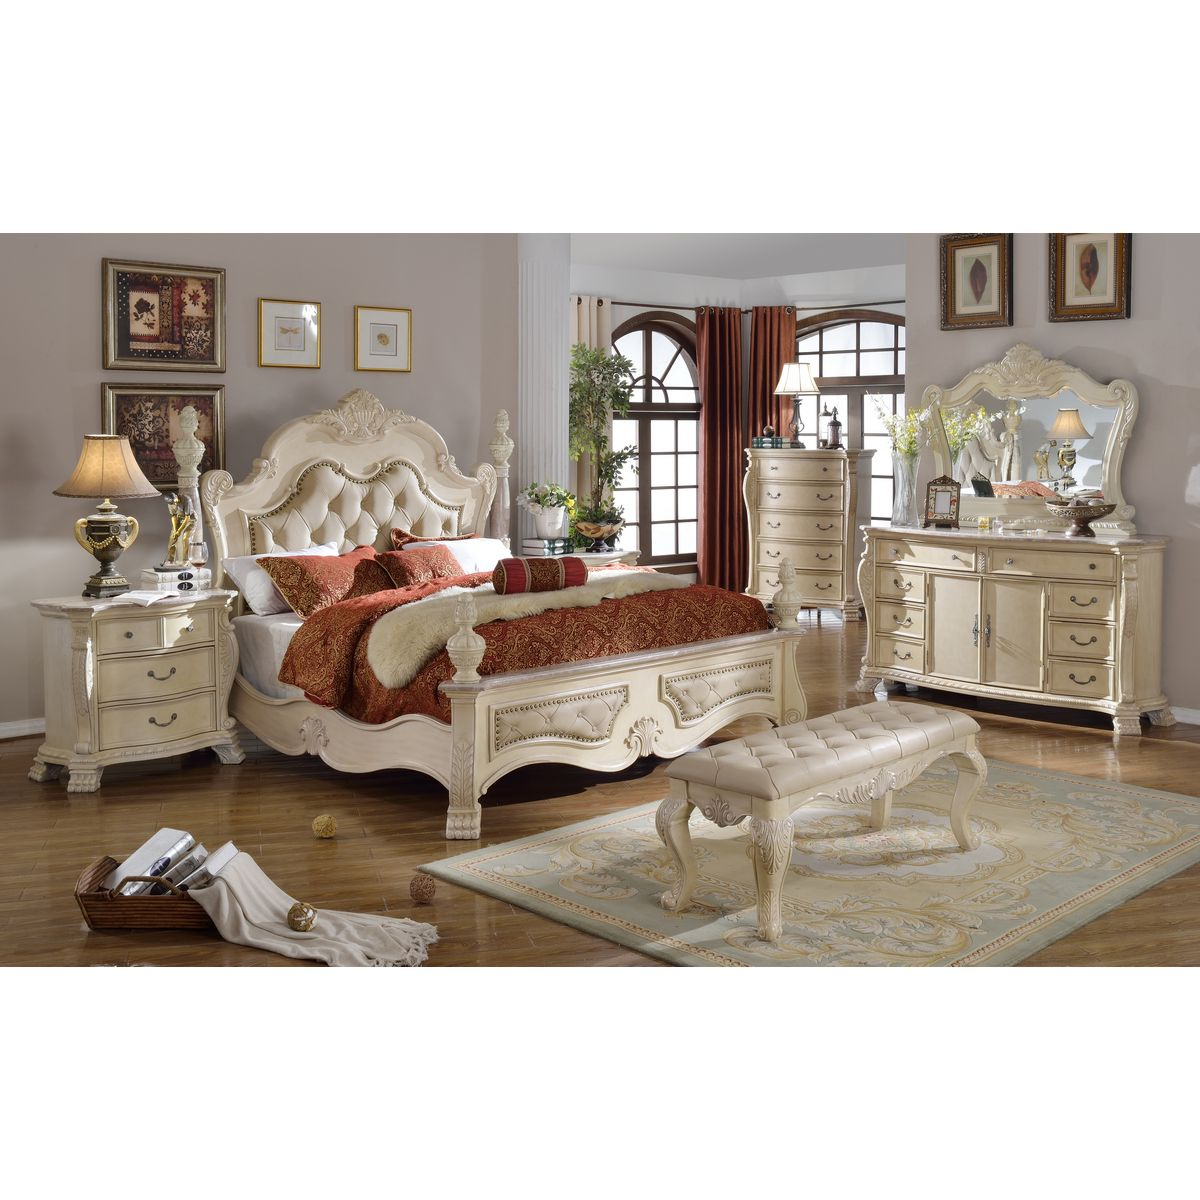 Meridian Furniture MonacoD Monaco Antique White Dresser w Ornate